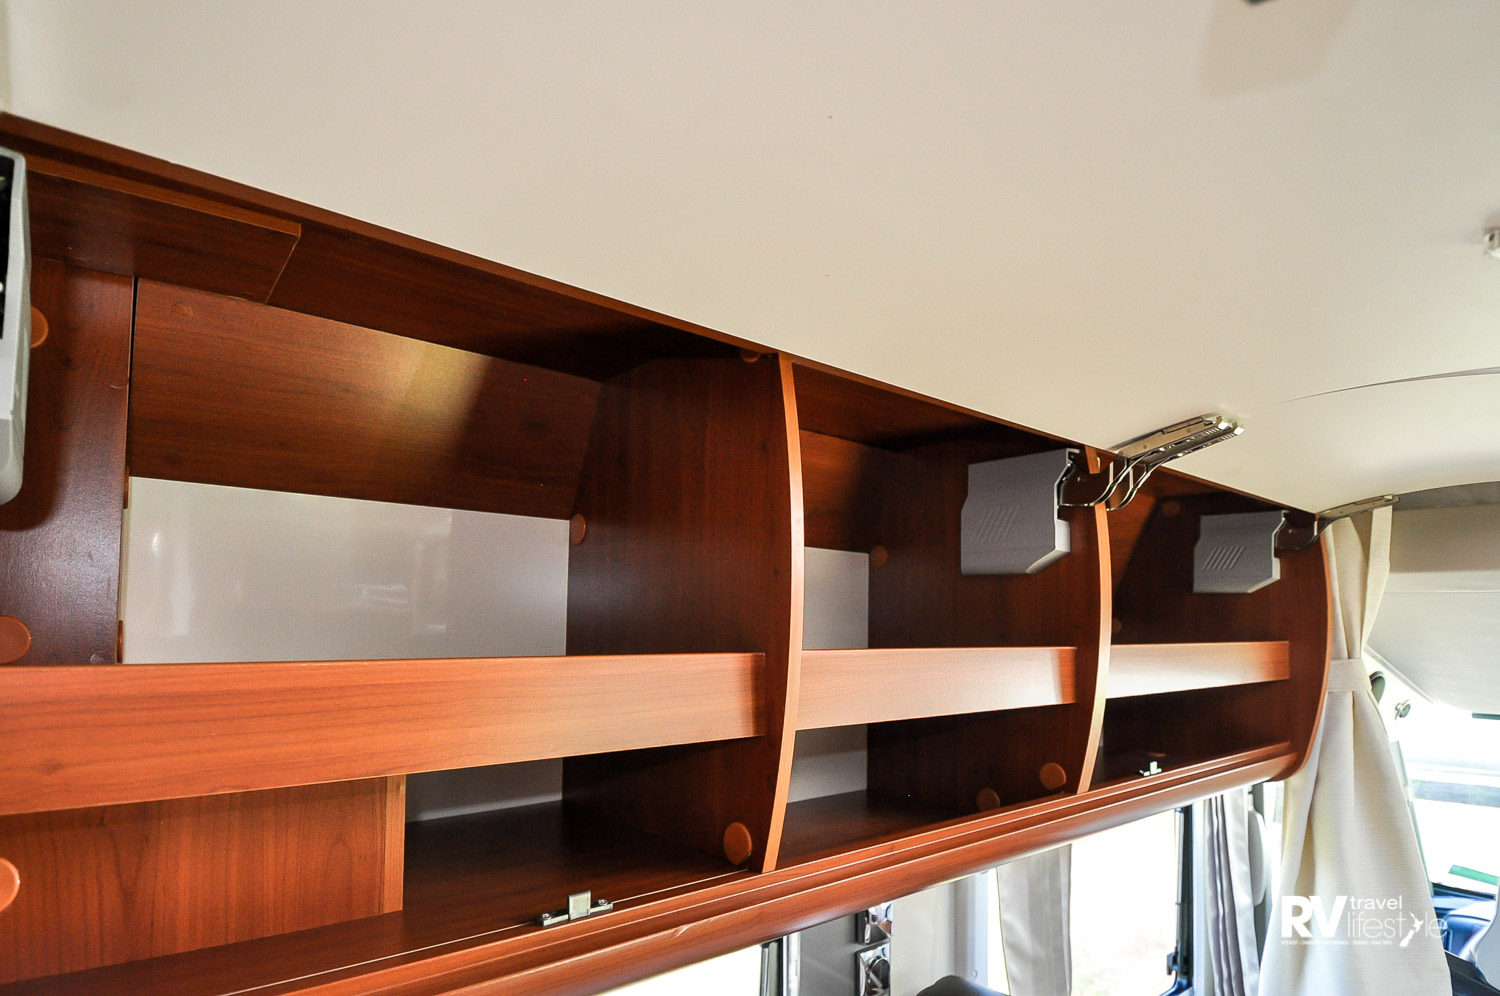 Overhead lockers have shelves with uplifts and quality fittings. Uplifts stop items falling out upon opening – very handy